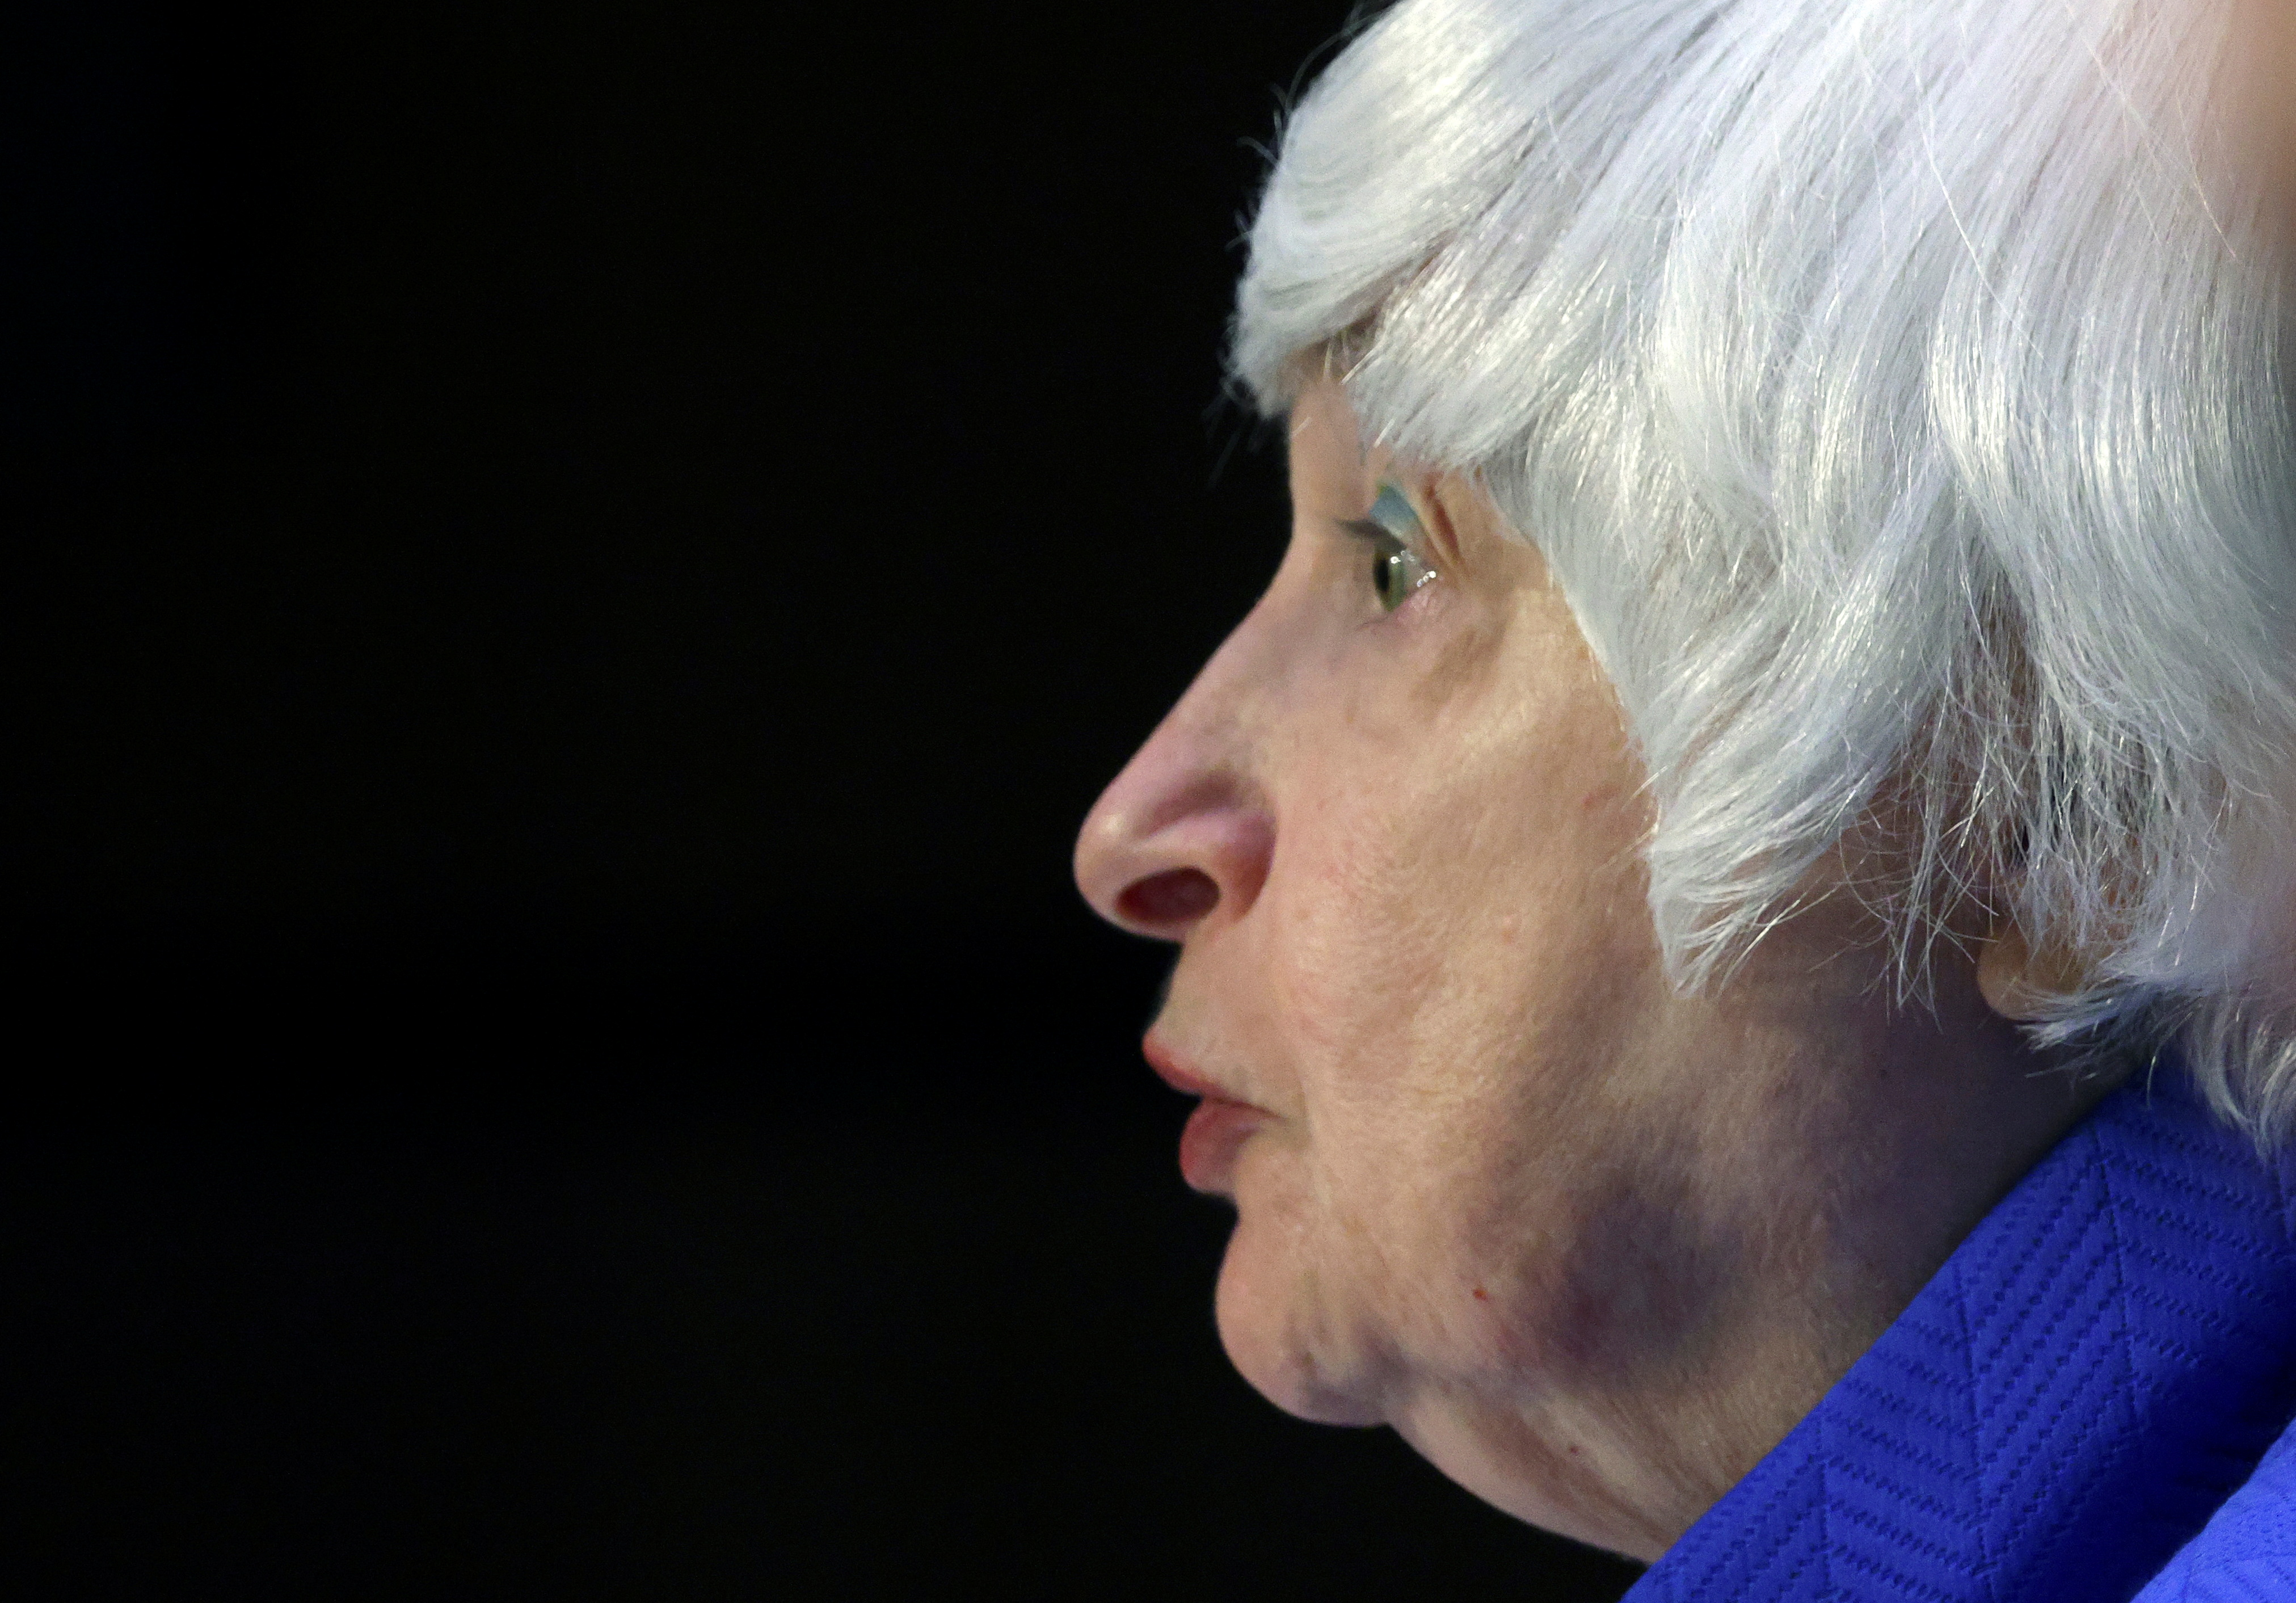 Treasury Secretary Janet Yellen testifies during a Senate Banking, Housing and Urban Affairs Committee hearing on the CARES Act, at the Hart Senate Office Building in Washington, DC, U.S., September 28, 2021. Kevin Dietsch/Pool via REUTERS